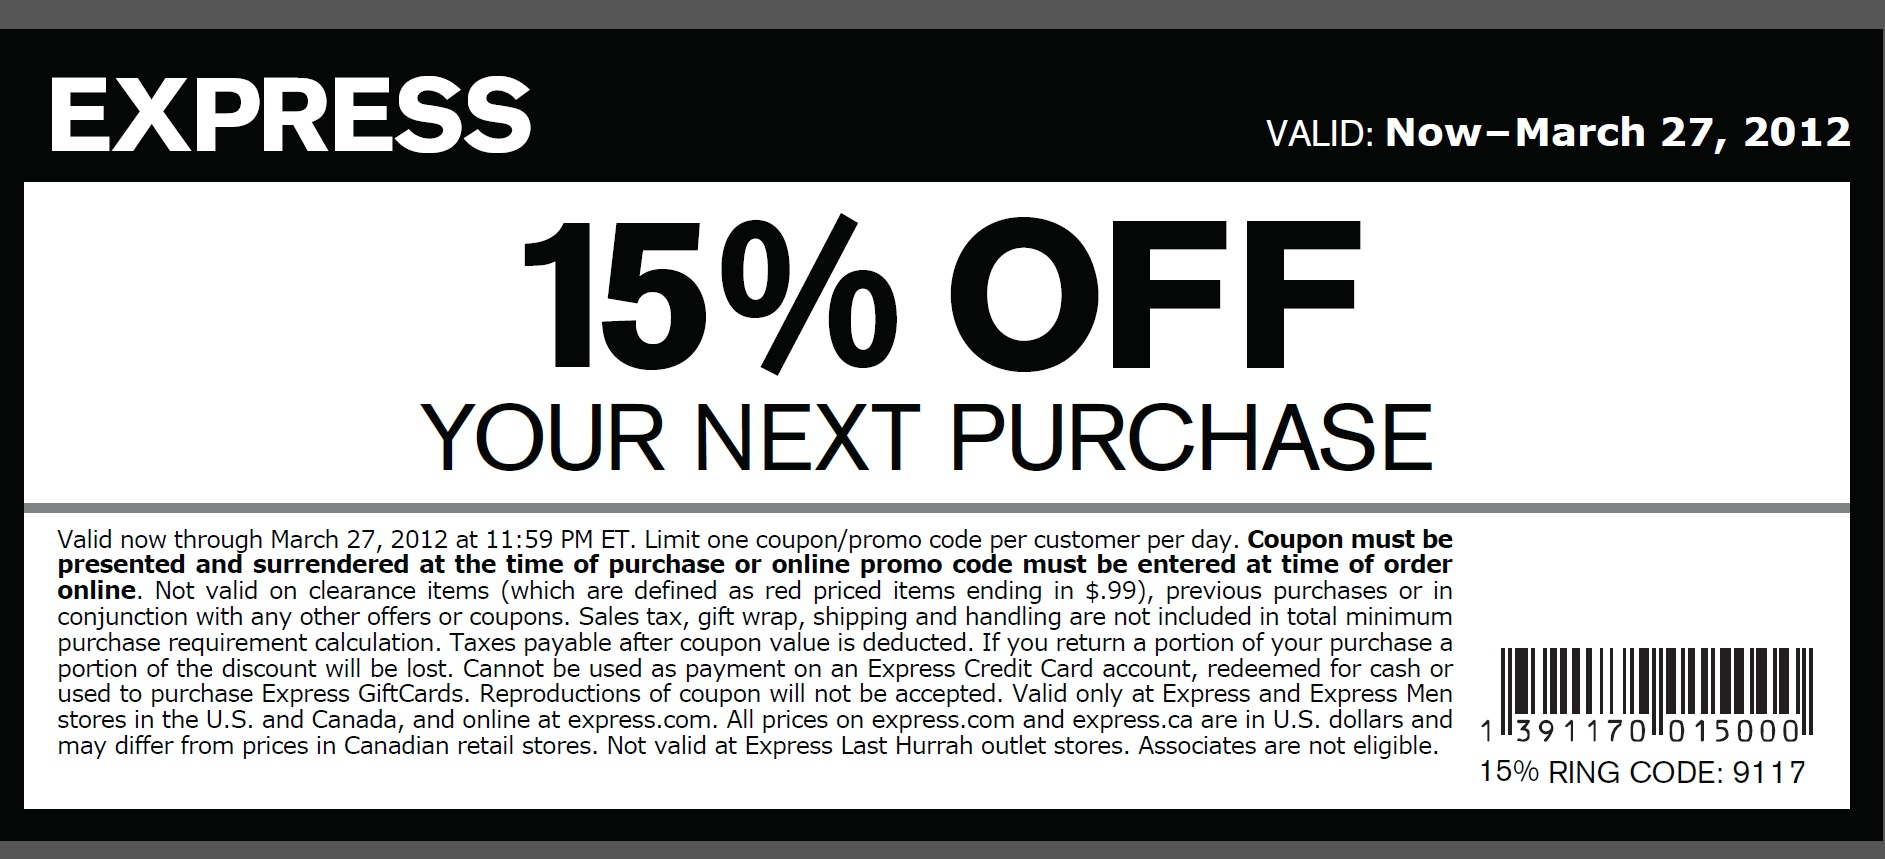 Start saving right away by signing up for Express emails to get 15% off your next purchase. Plus, they'll send you exclusive offers and promo codes throughout the year. you'll get you a free gift on your birthday, and you'll earn 15 points for every dollar you spend on the card. Once you hit 2, points, you'll earn a $10 reward.